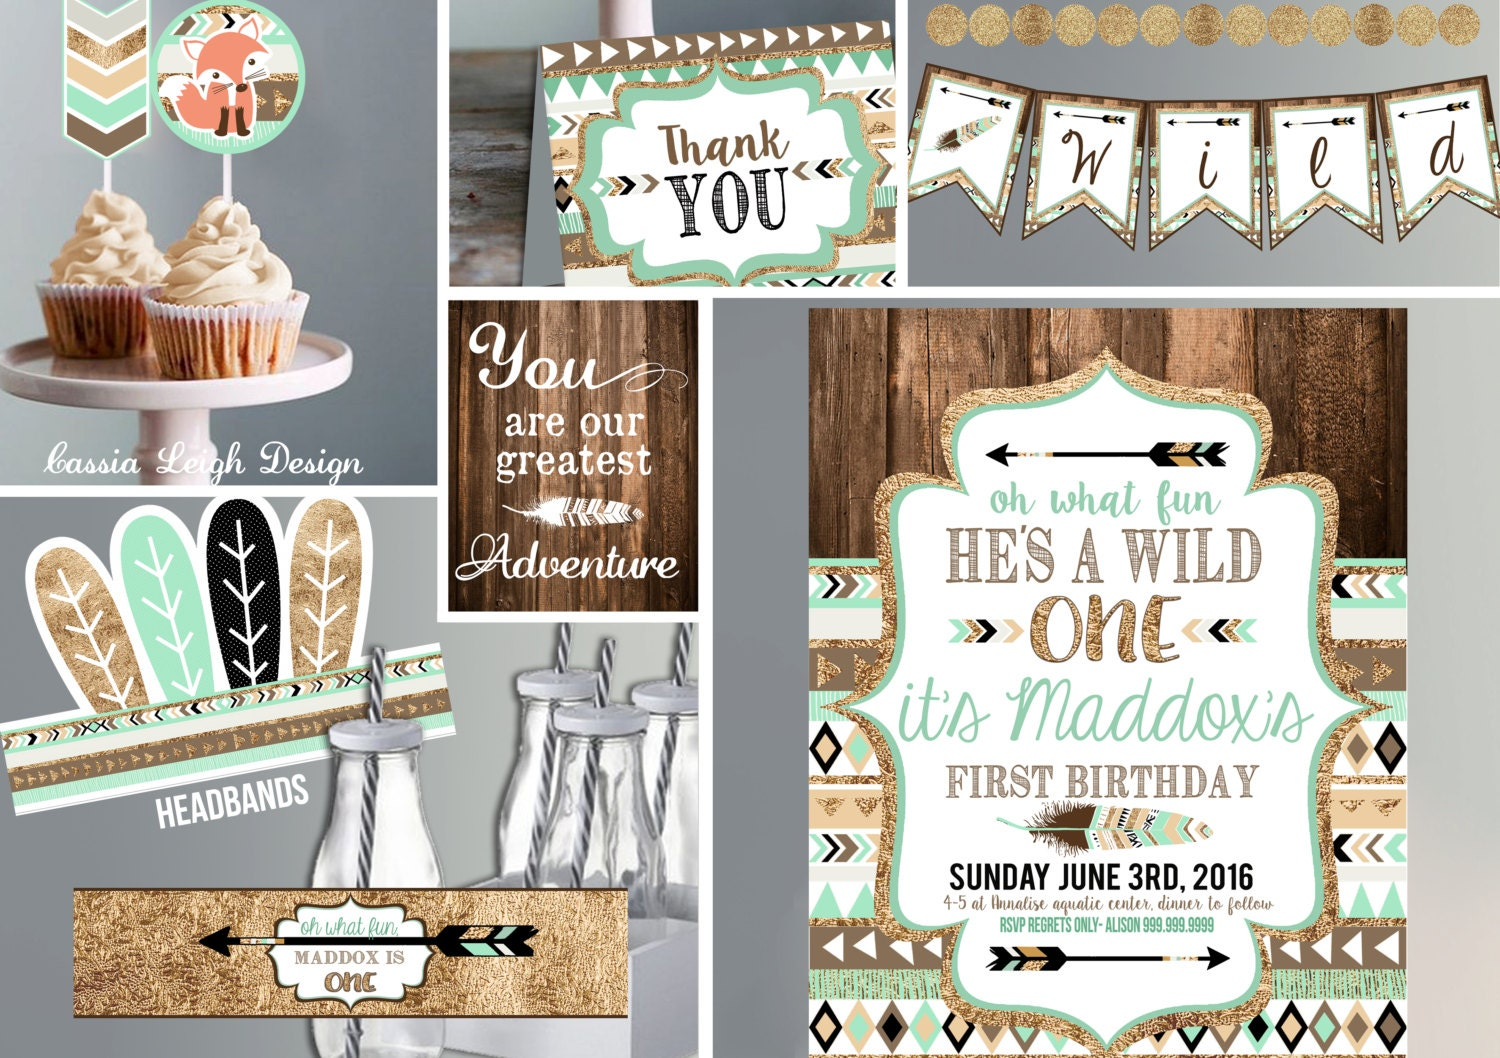 Wild One Birthday Invitation with Decor brown mint teal and